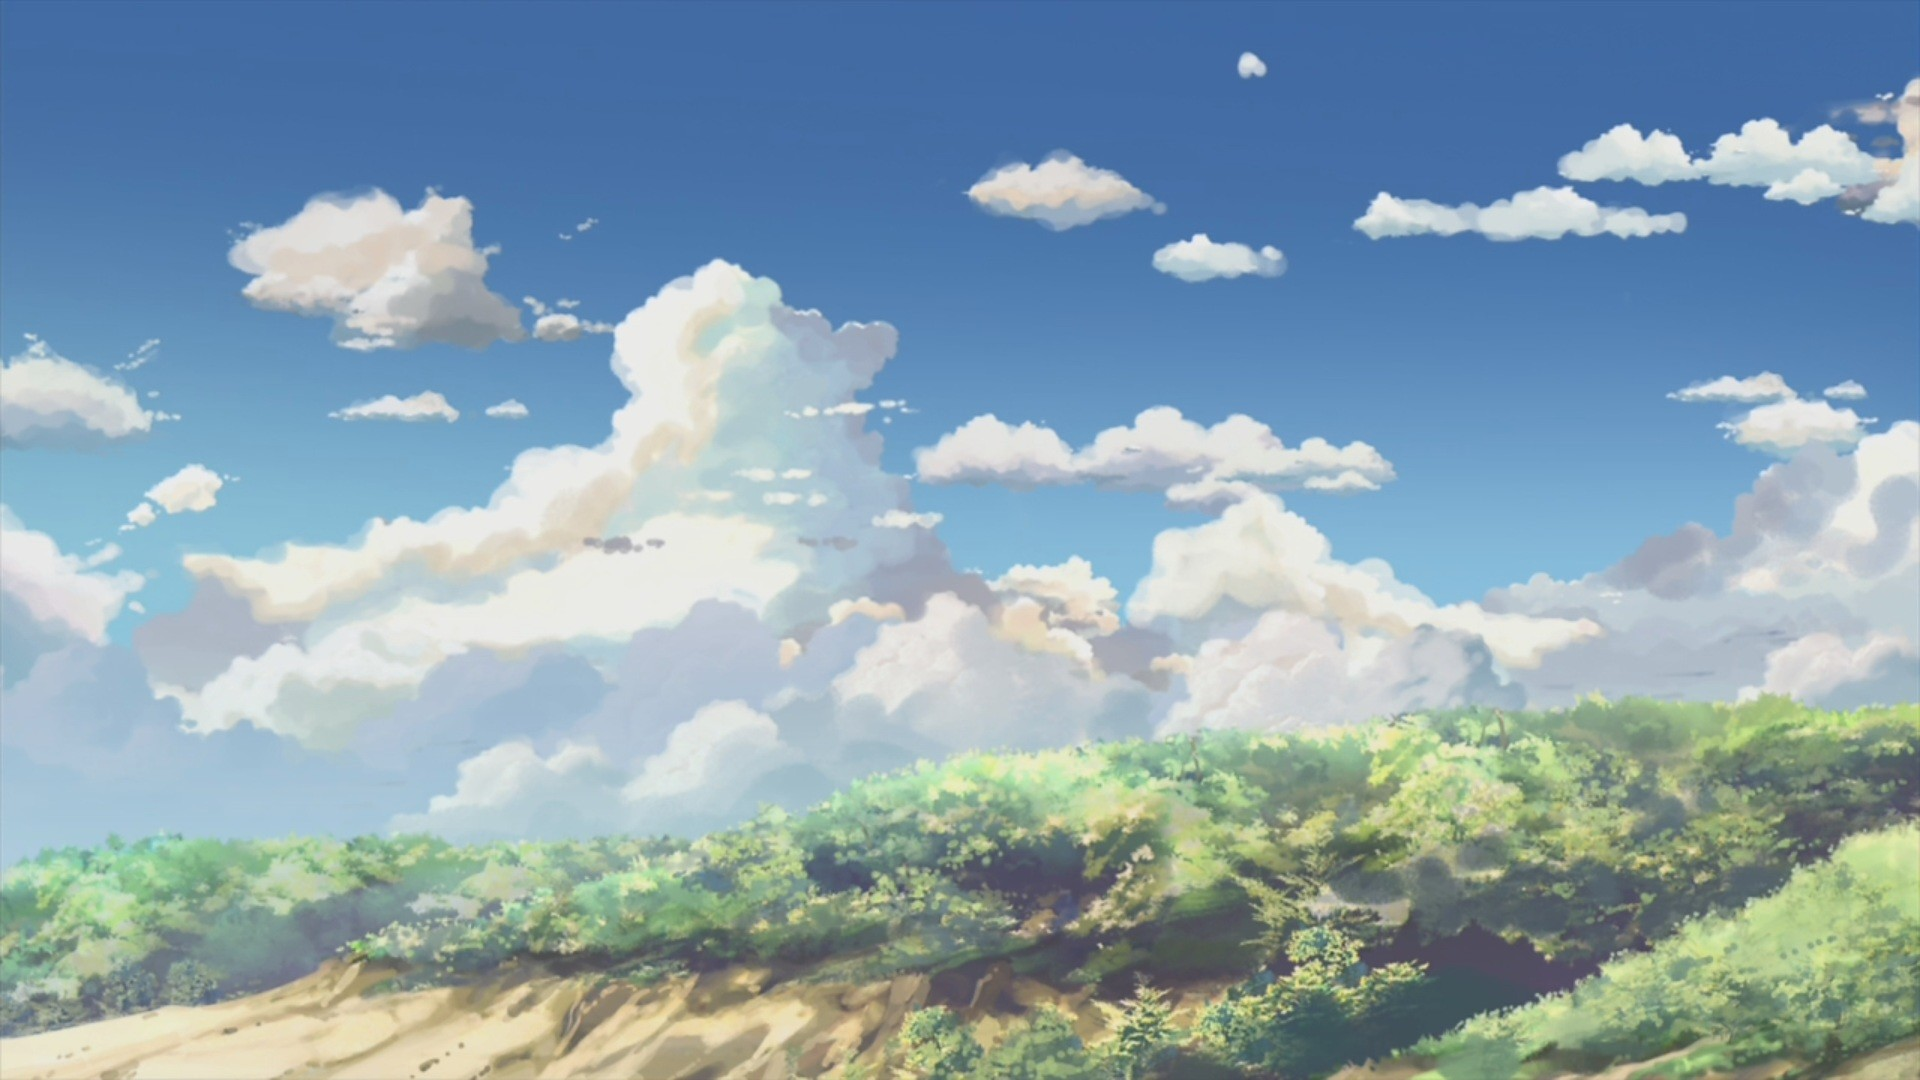 Res: 1920x1080, Anime Scenery Wallpaper 1920X1080 Hd Cool 7 HD Wallpapers